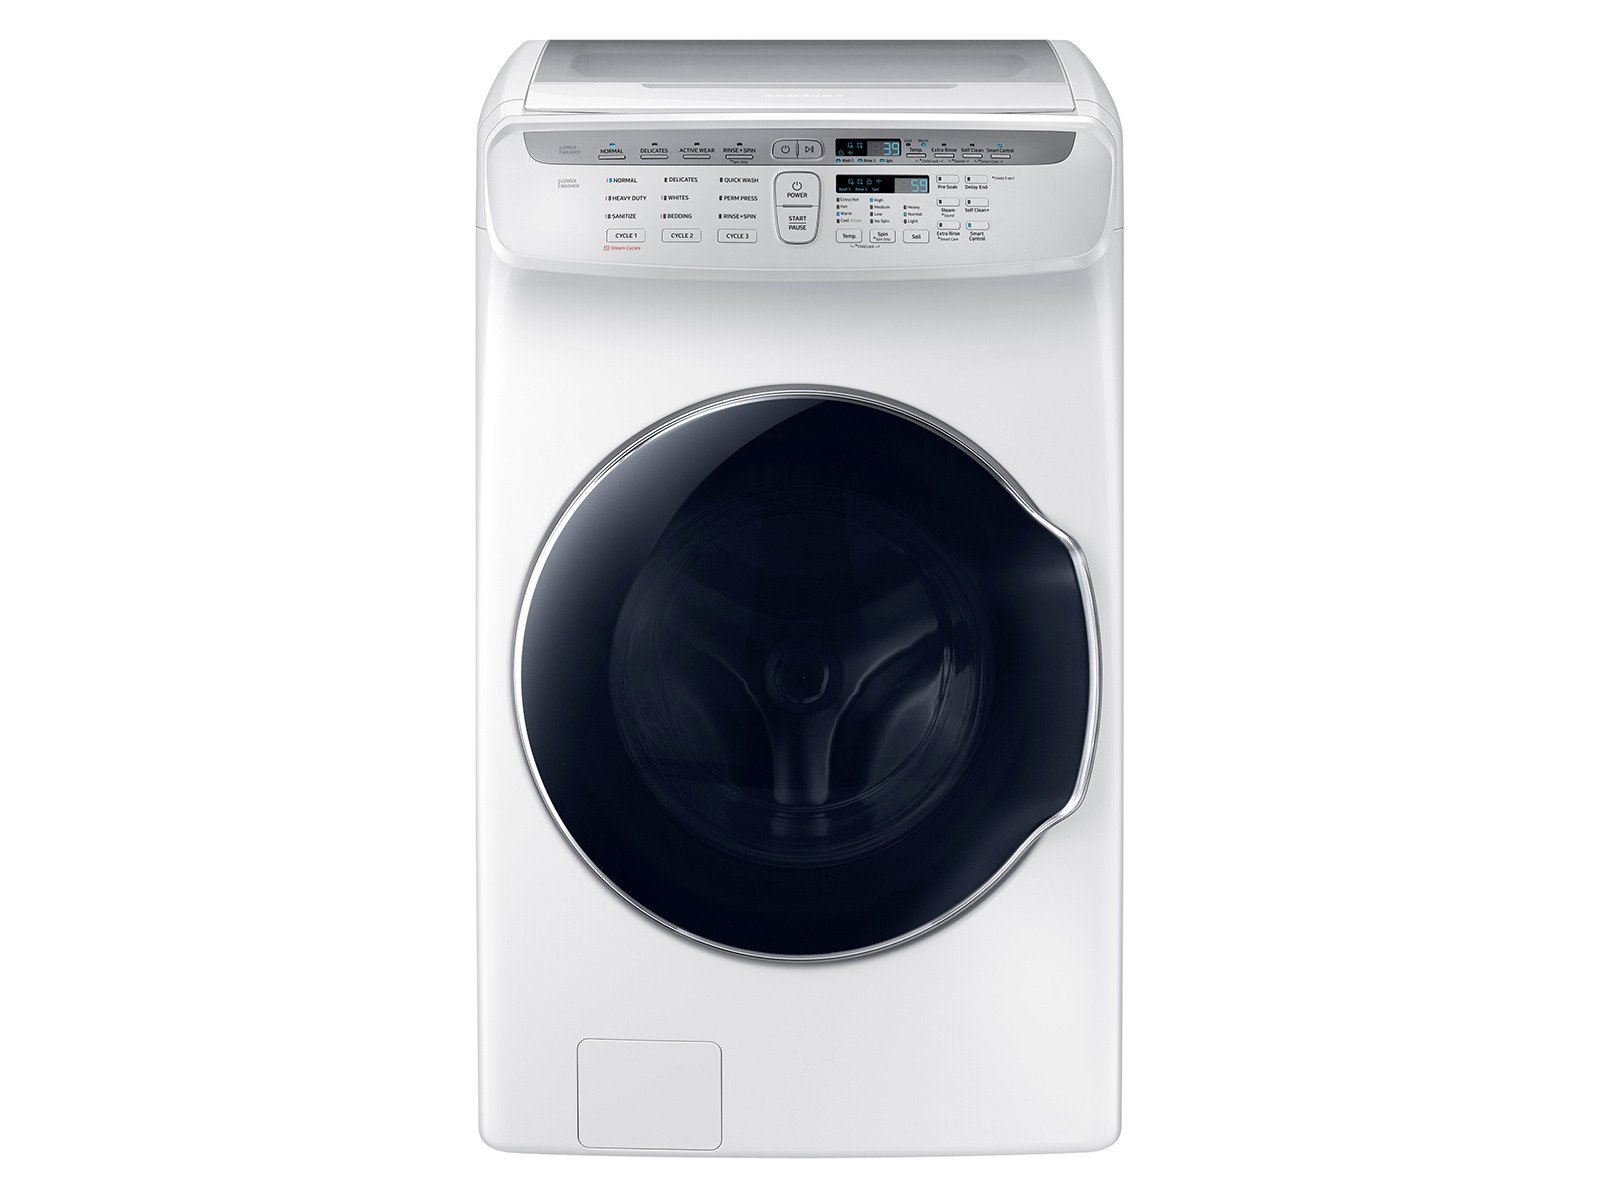 Samsung Appliance Rebate form 2018 Elegant Wv9900 6 0 Cu Ft Flexwash™ Washer Washers Wv60m9900aw A5